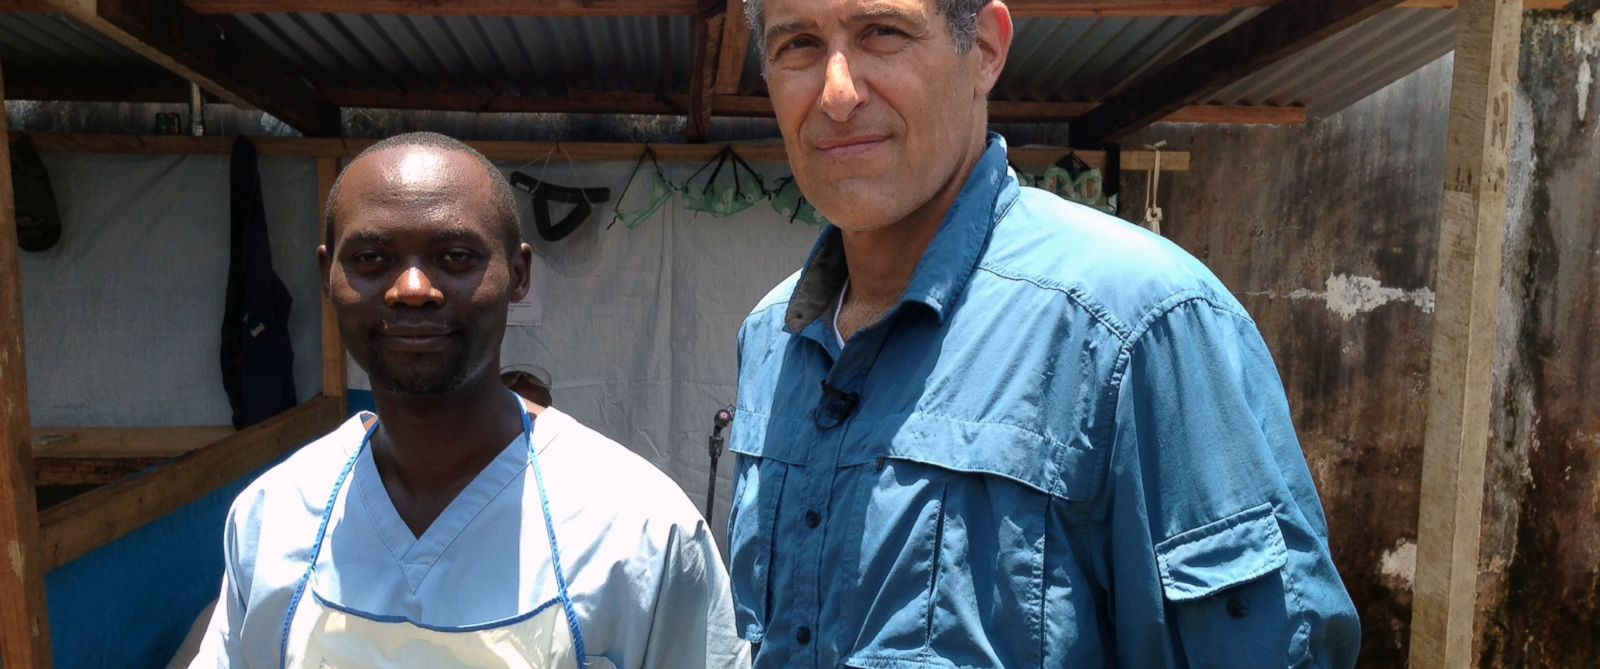 PHOTO: Dr. David Kaggwa and Dr. Richard Besser at an Ebola ward in Monrovia, Liberia.